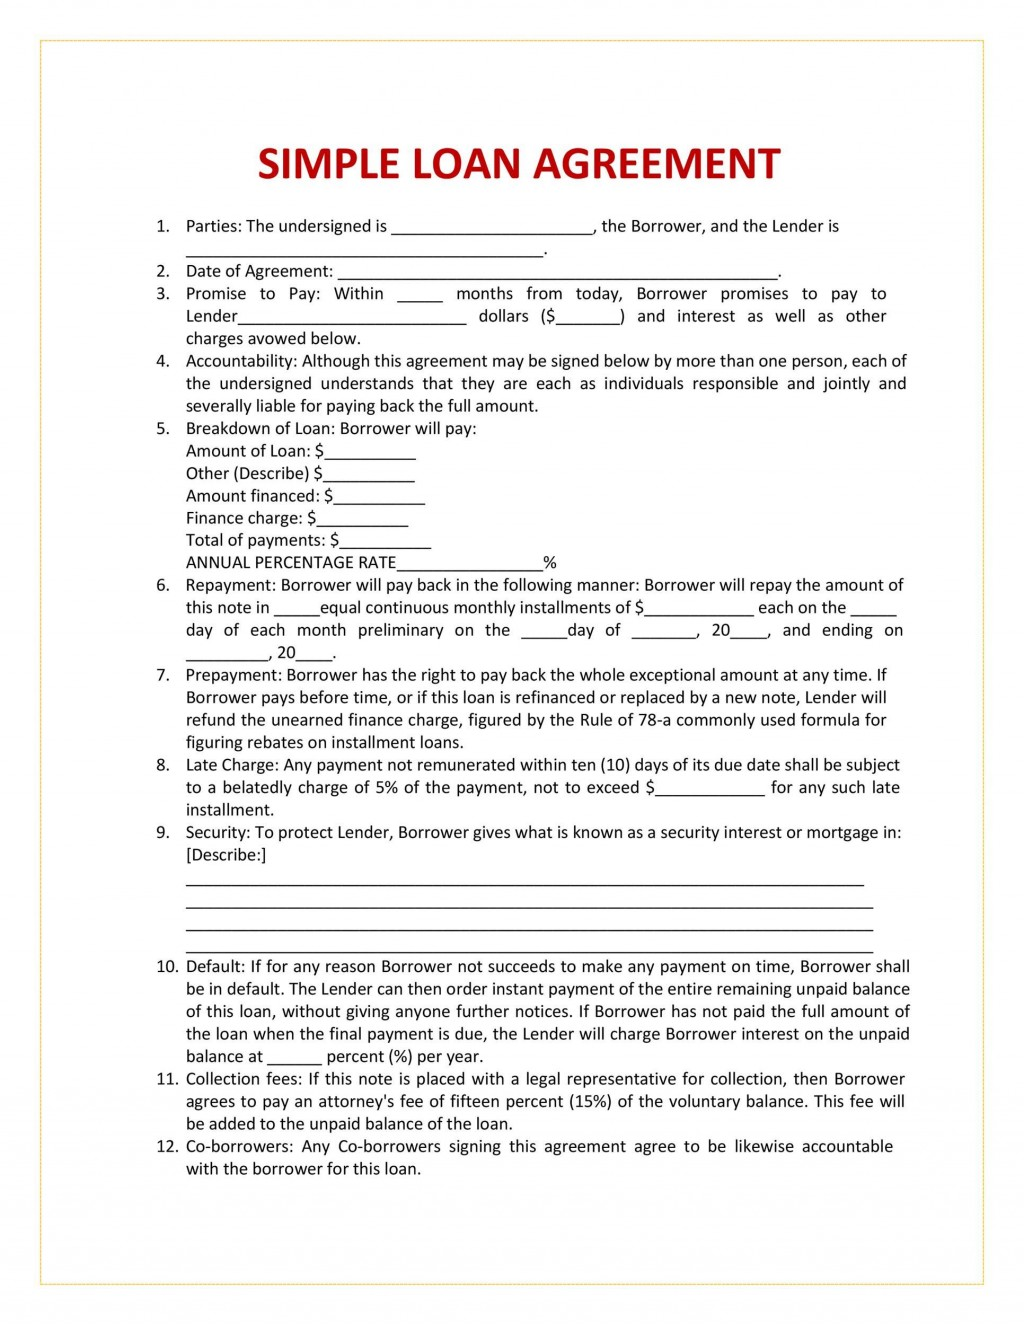 005 Sensational Family Loan Agreement Template Canada Highest Quality Large